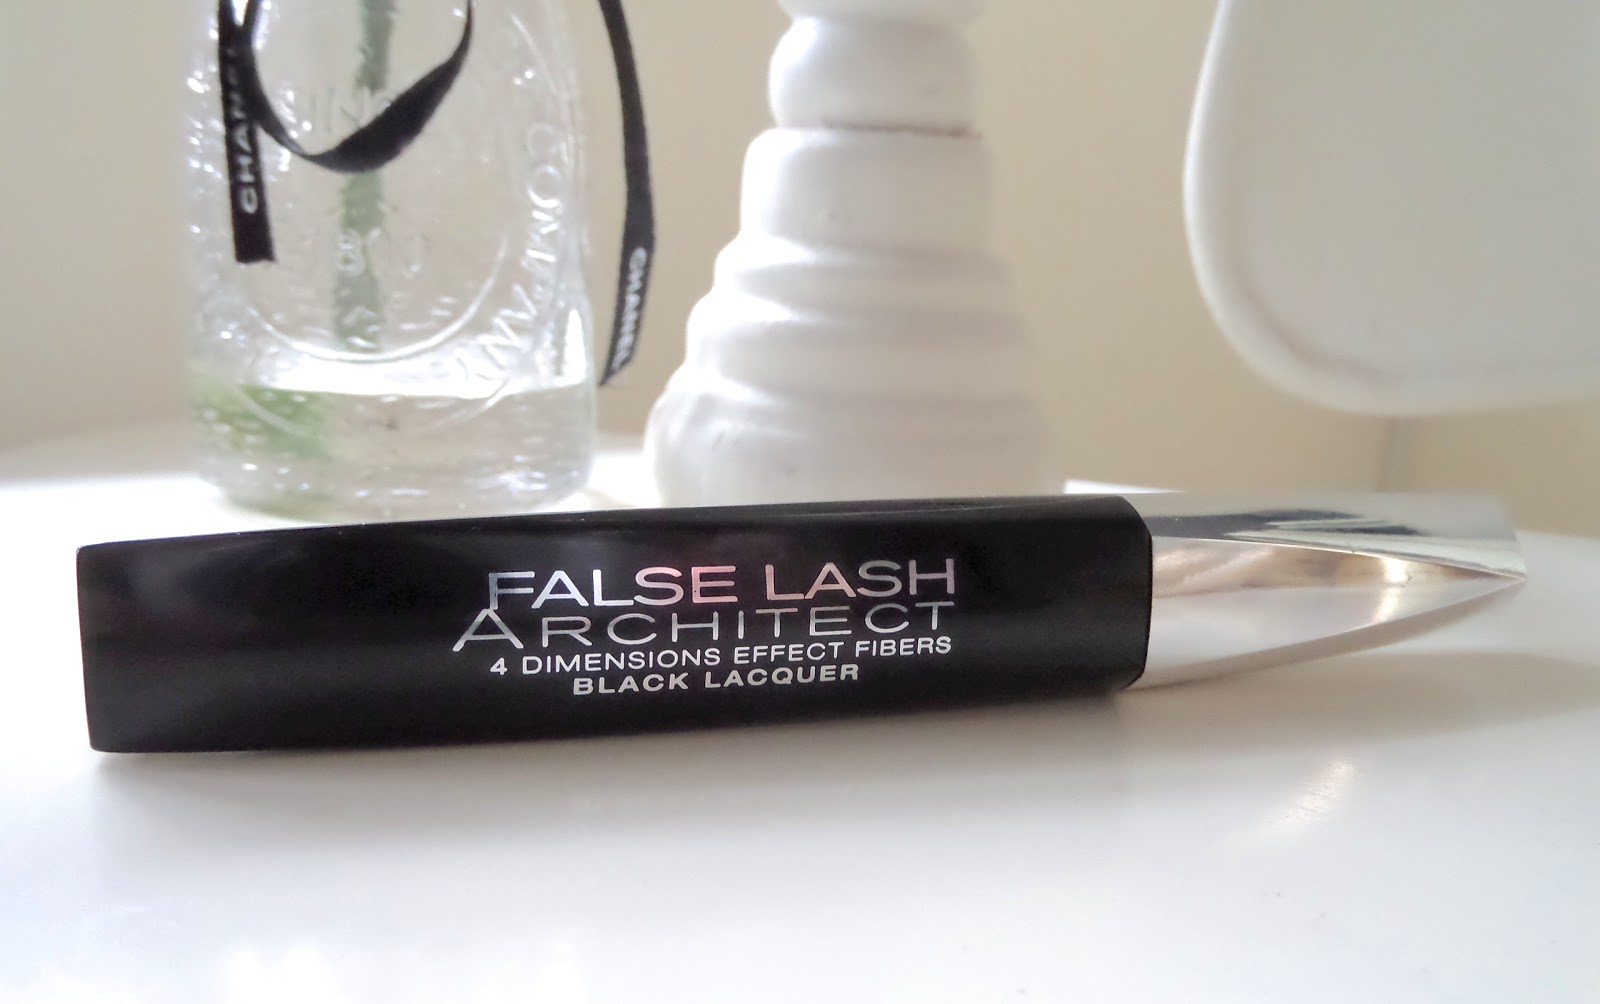 L'Oreal 4D Lash Architect Mascara Review